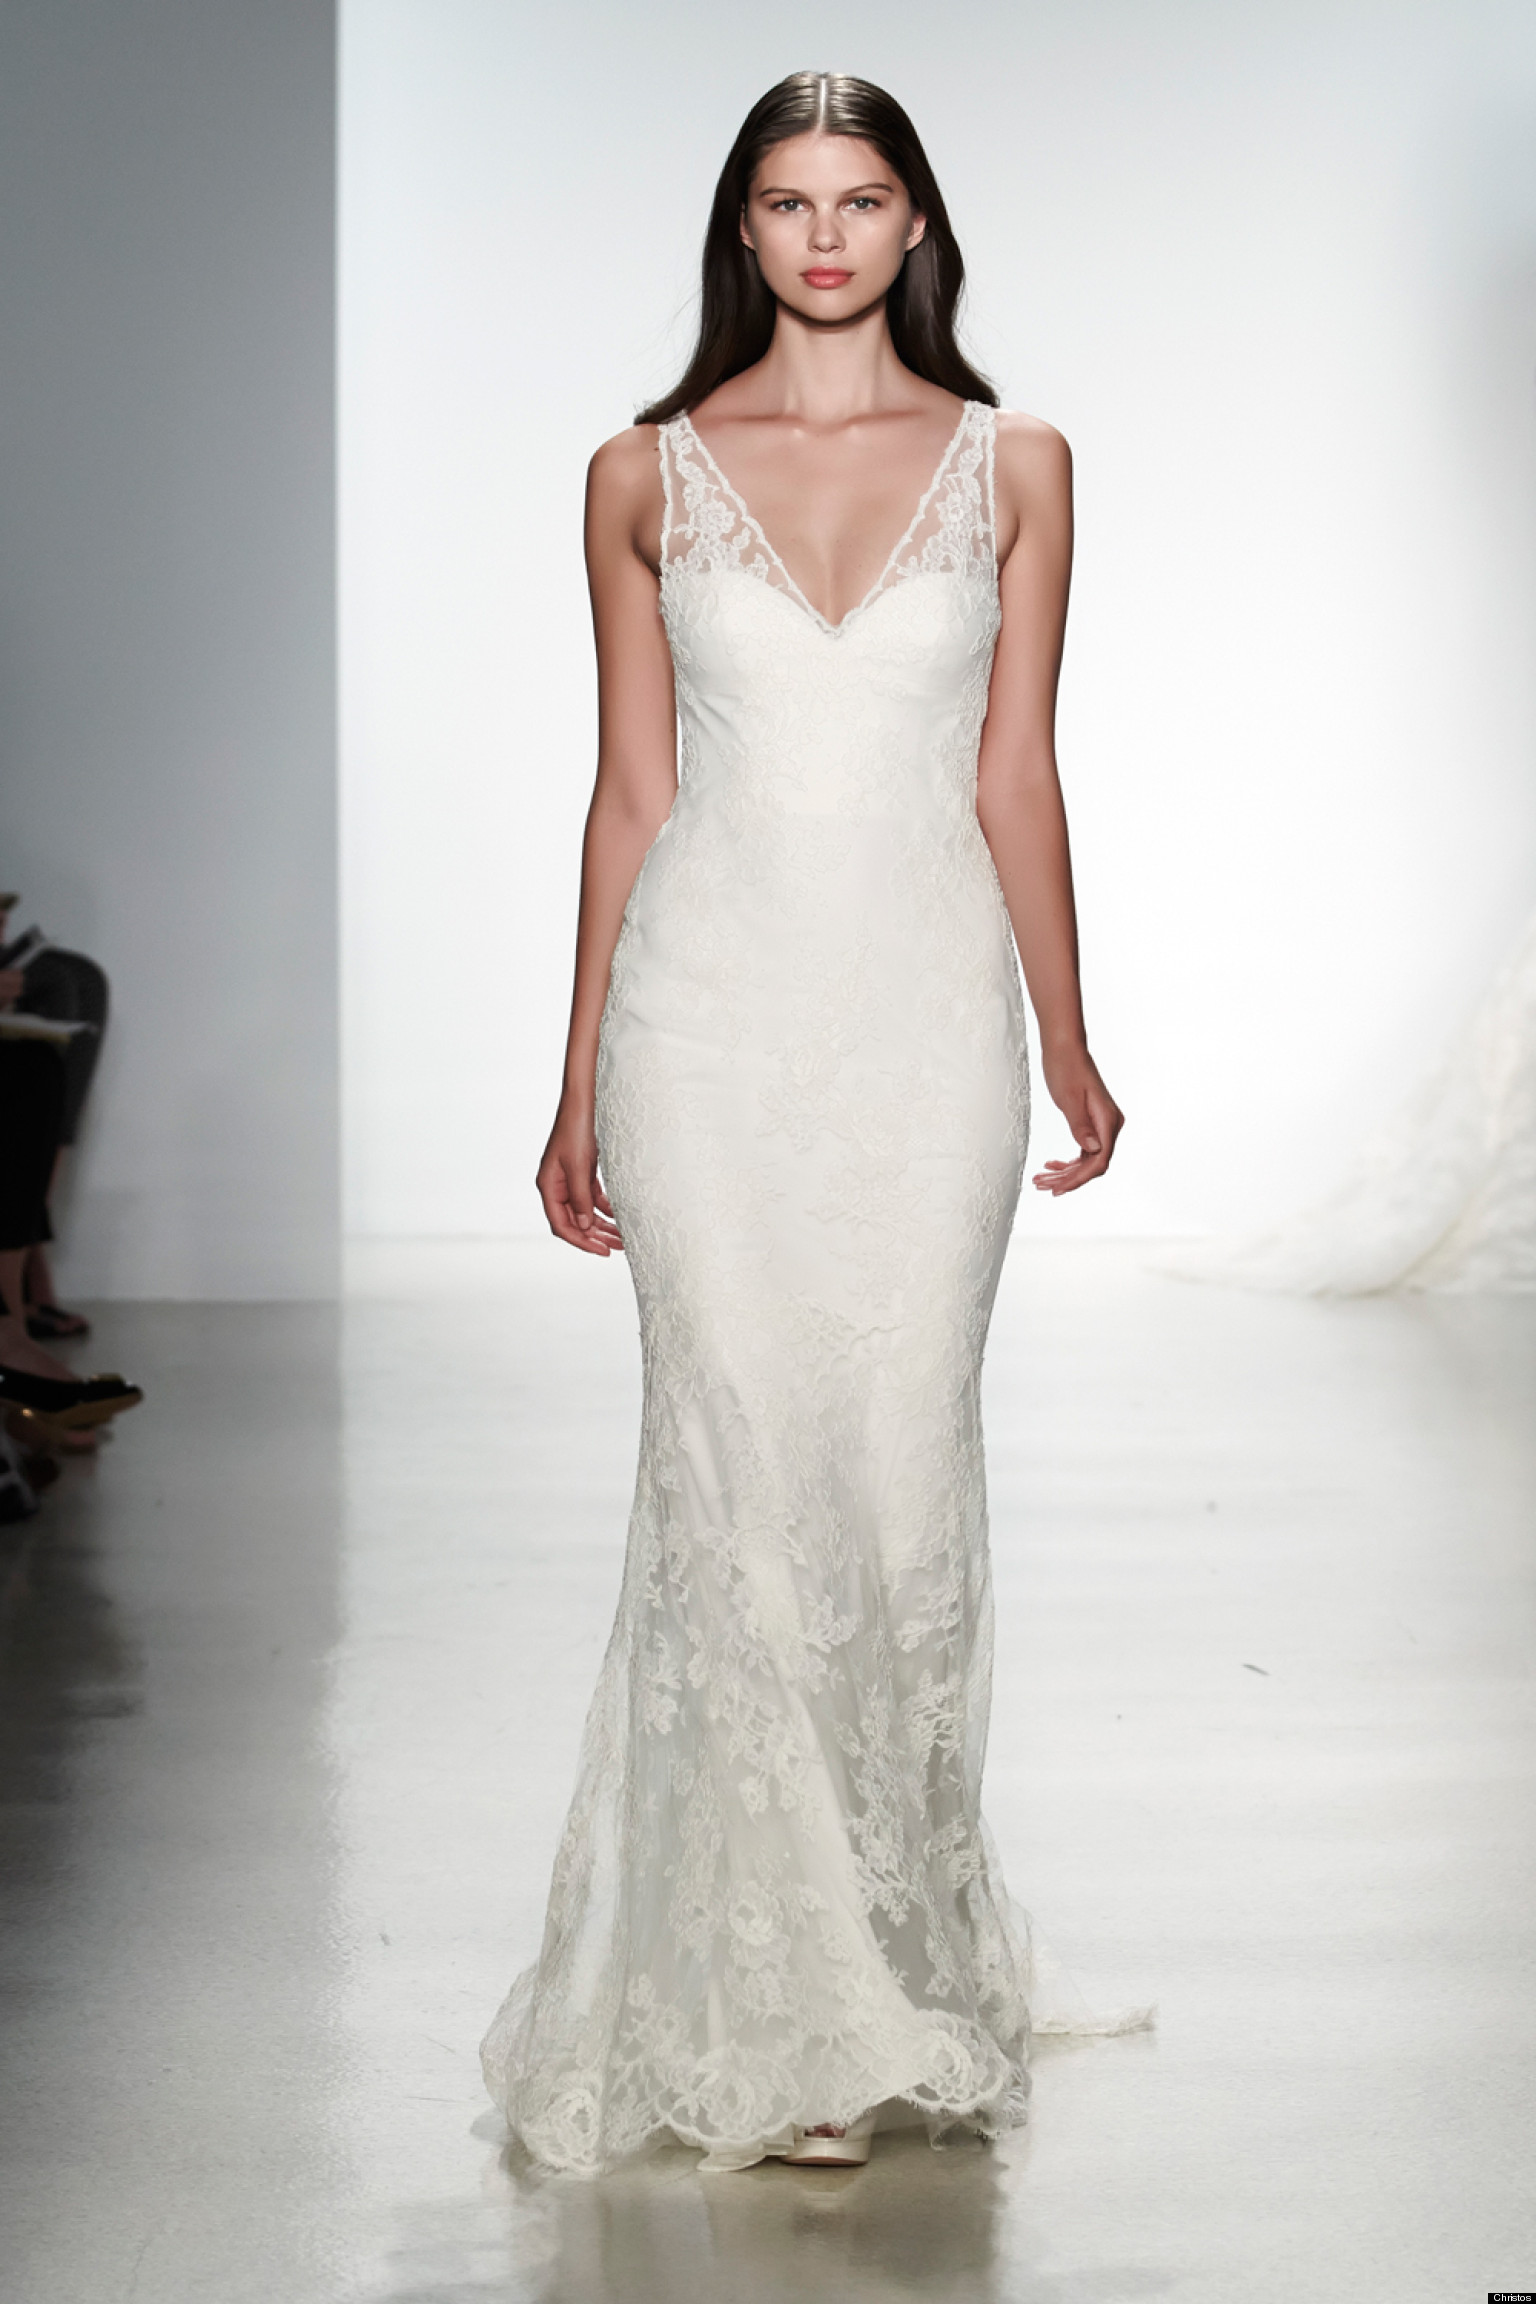 Choosing the best wedding gown for your body type huffpost for Wedding dresses for larger figures